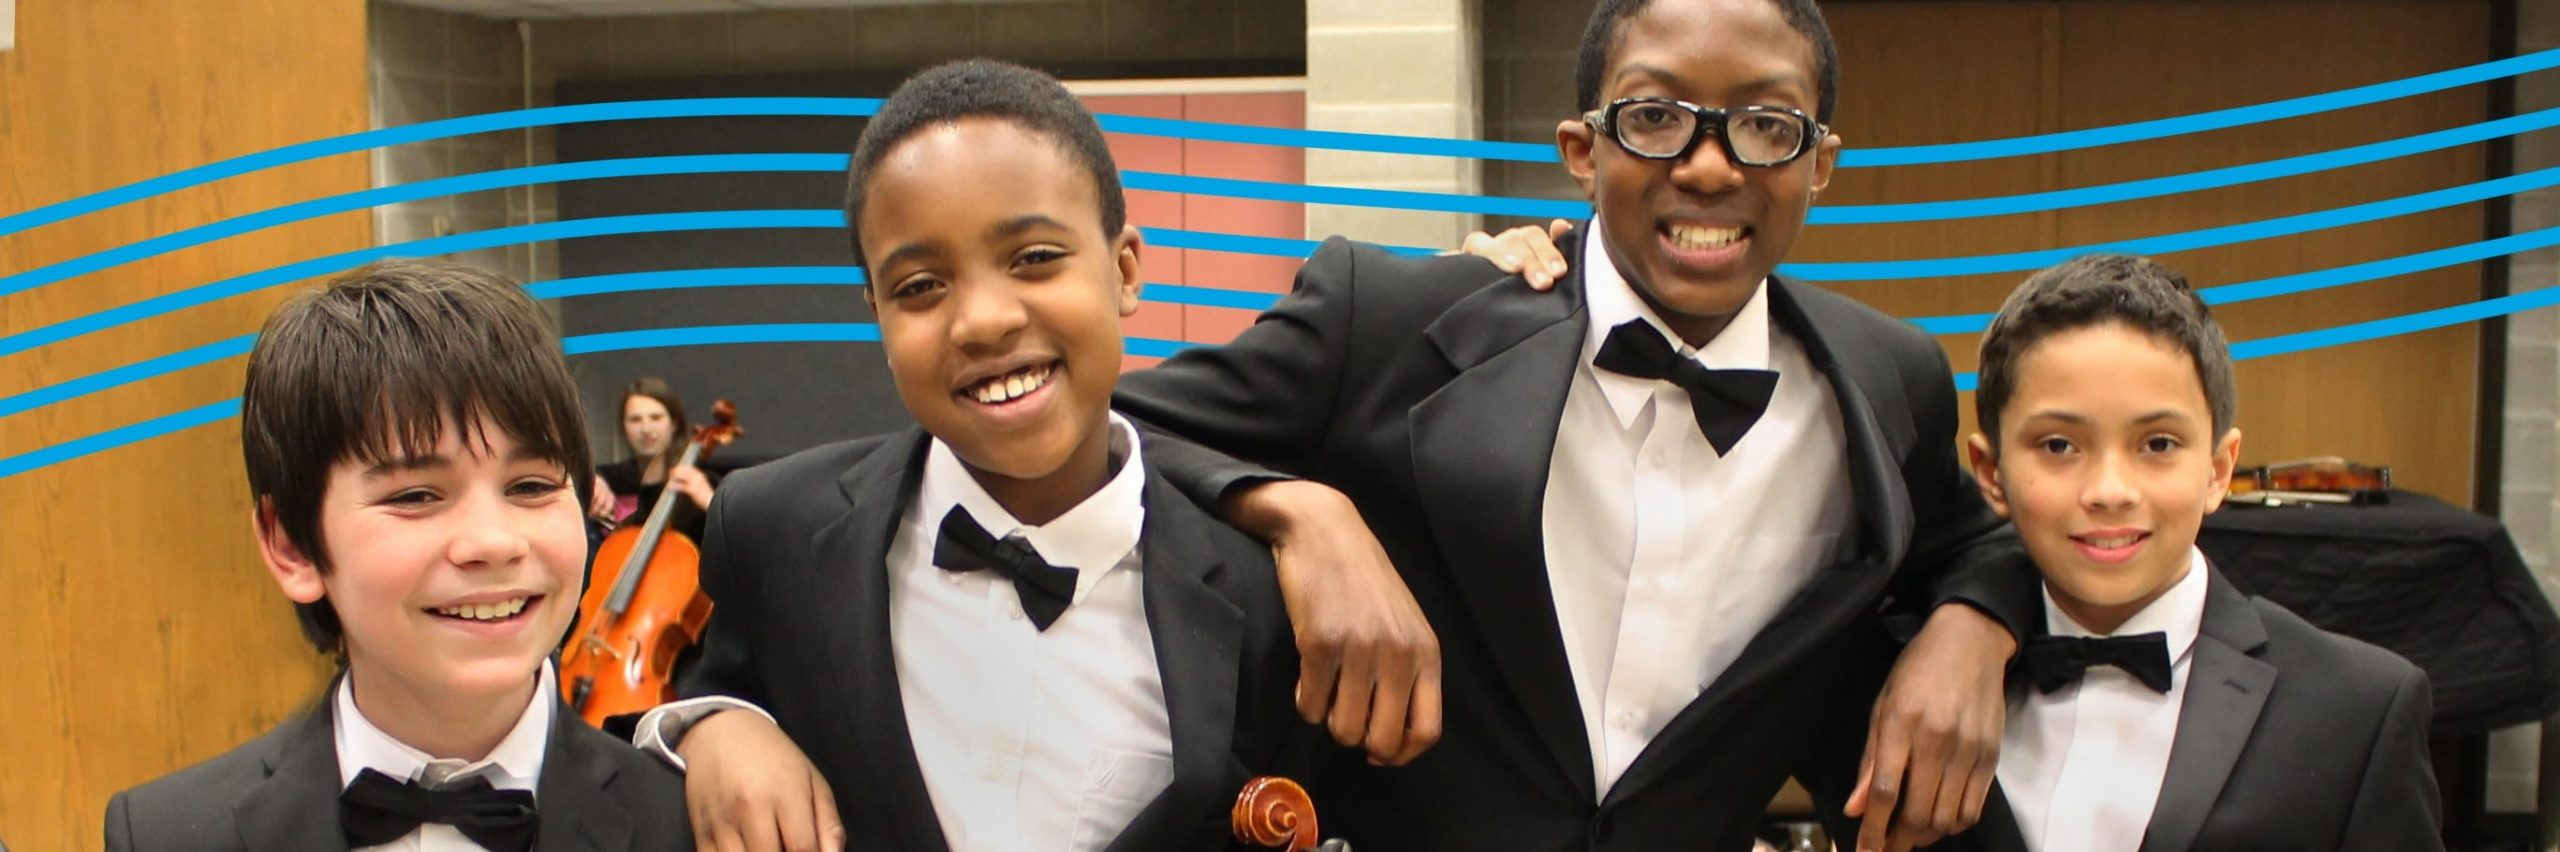 Four young male musicians in formal attire stand side-by-side and smile for a photograph